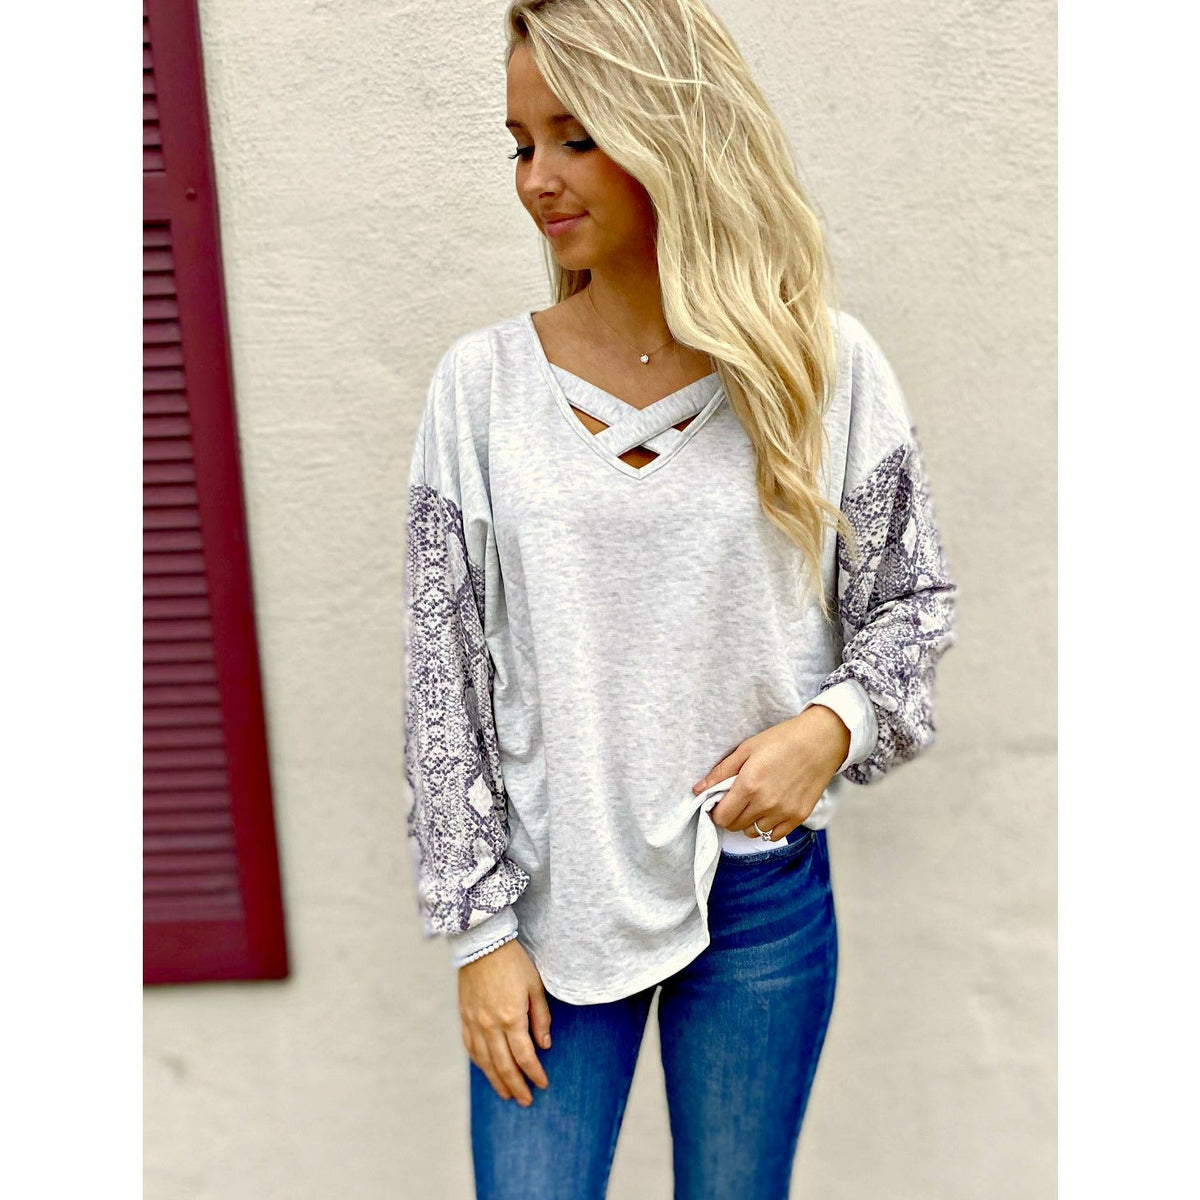 Criss Cross Date Night Top